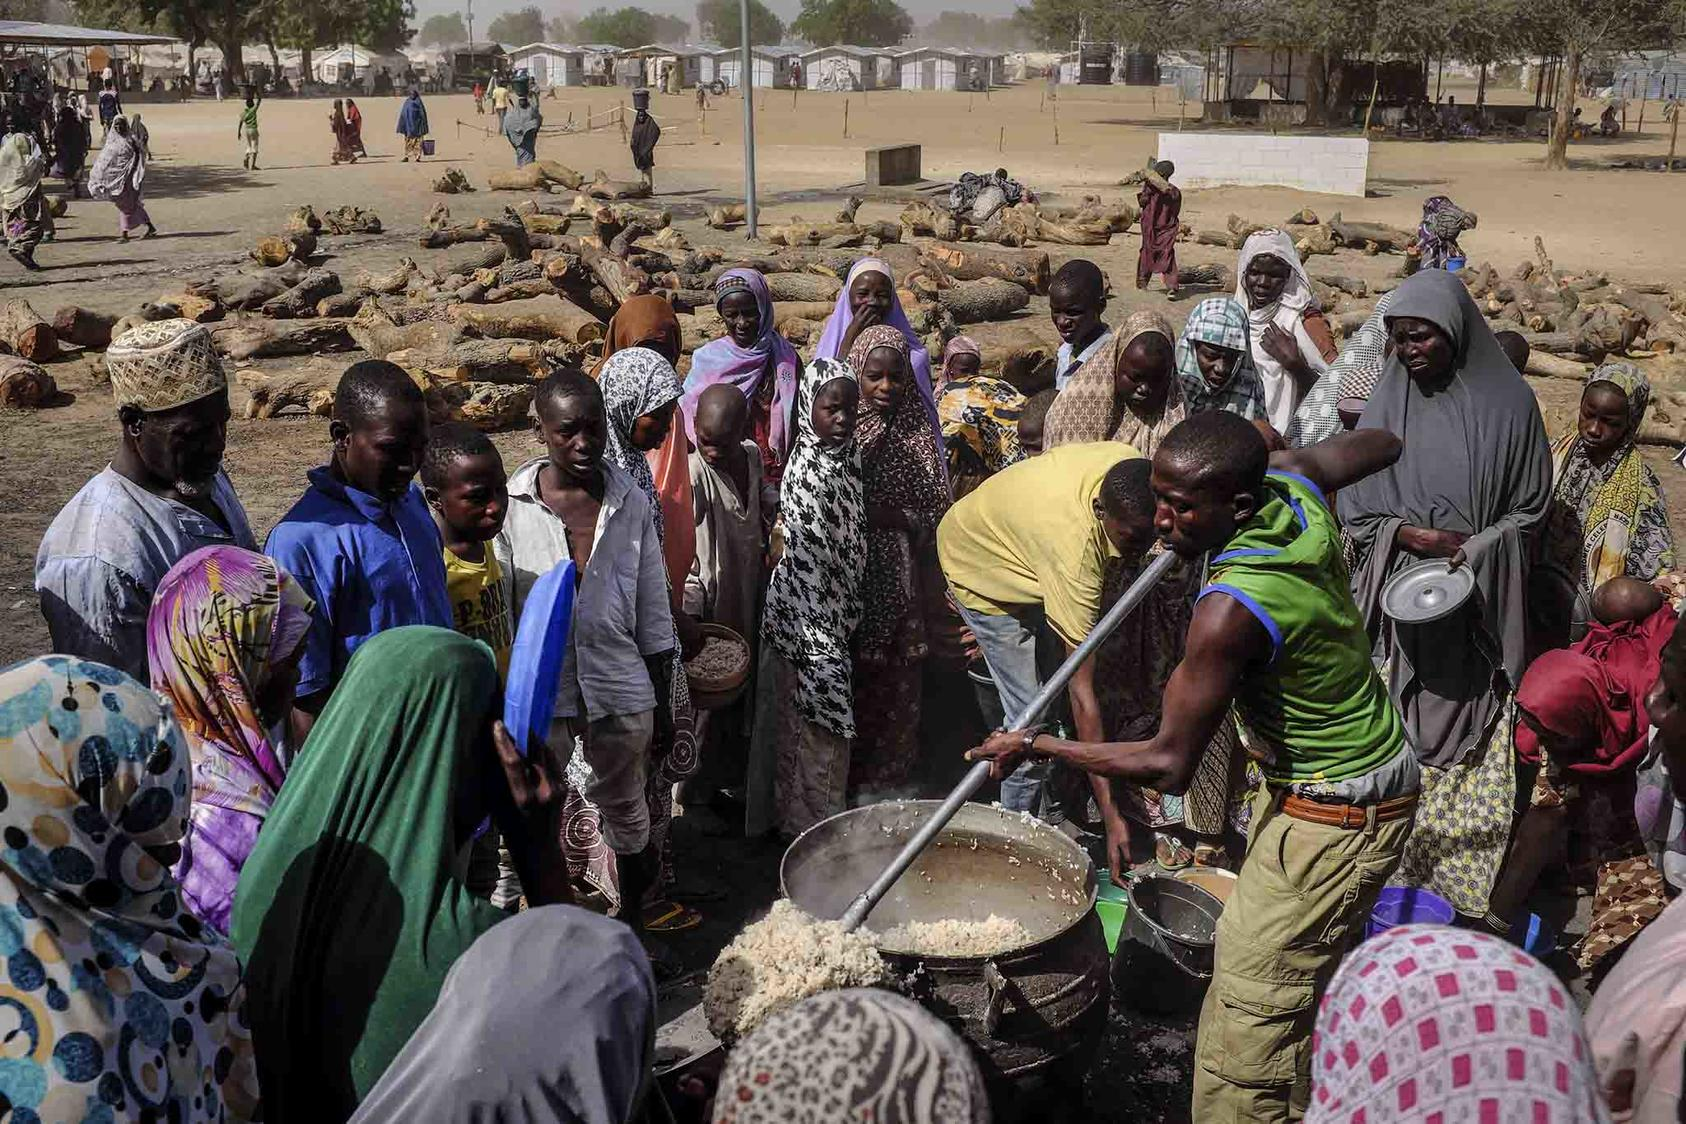 Nigerians uprooted amid the warfare involving Boko Haram receive rice at a camp on the outskirts of the city of Maiduguri in 2016. Nearly 2 million Nigerians are displaced by conflicts in the region. (NYT)